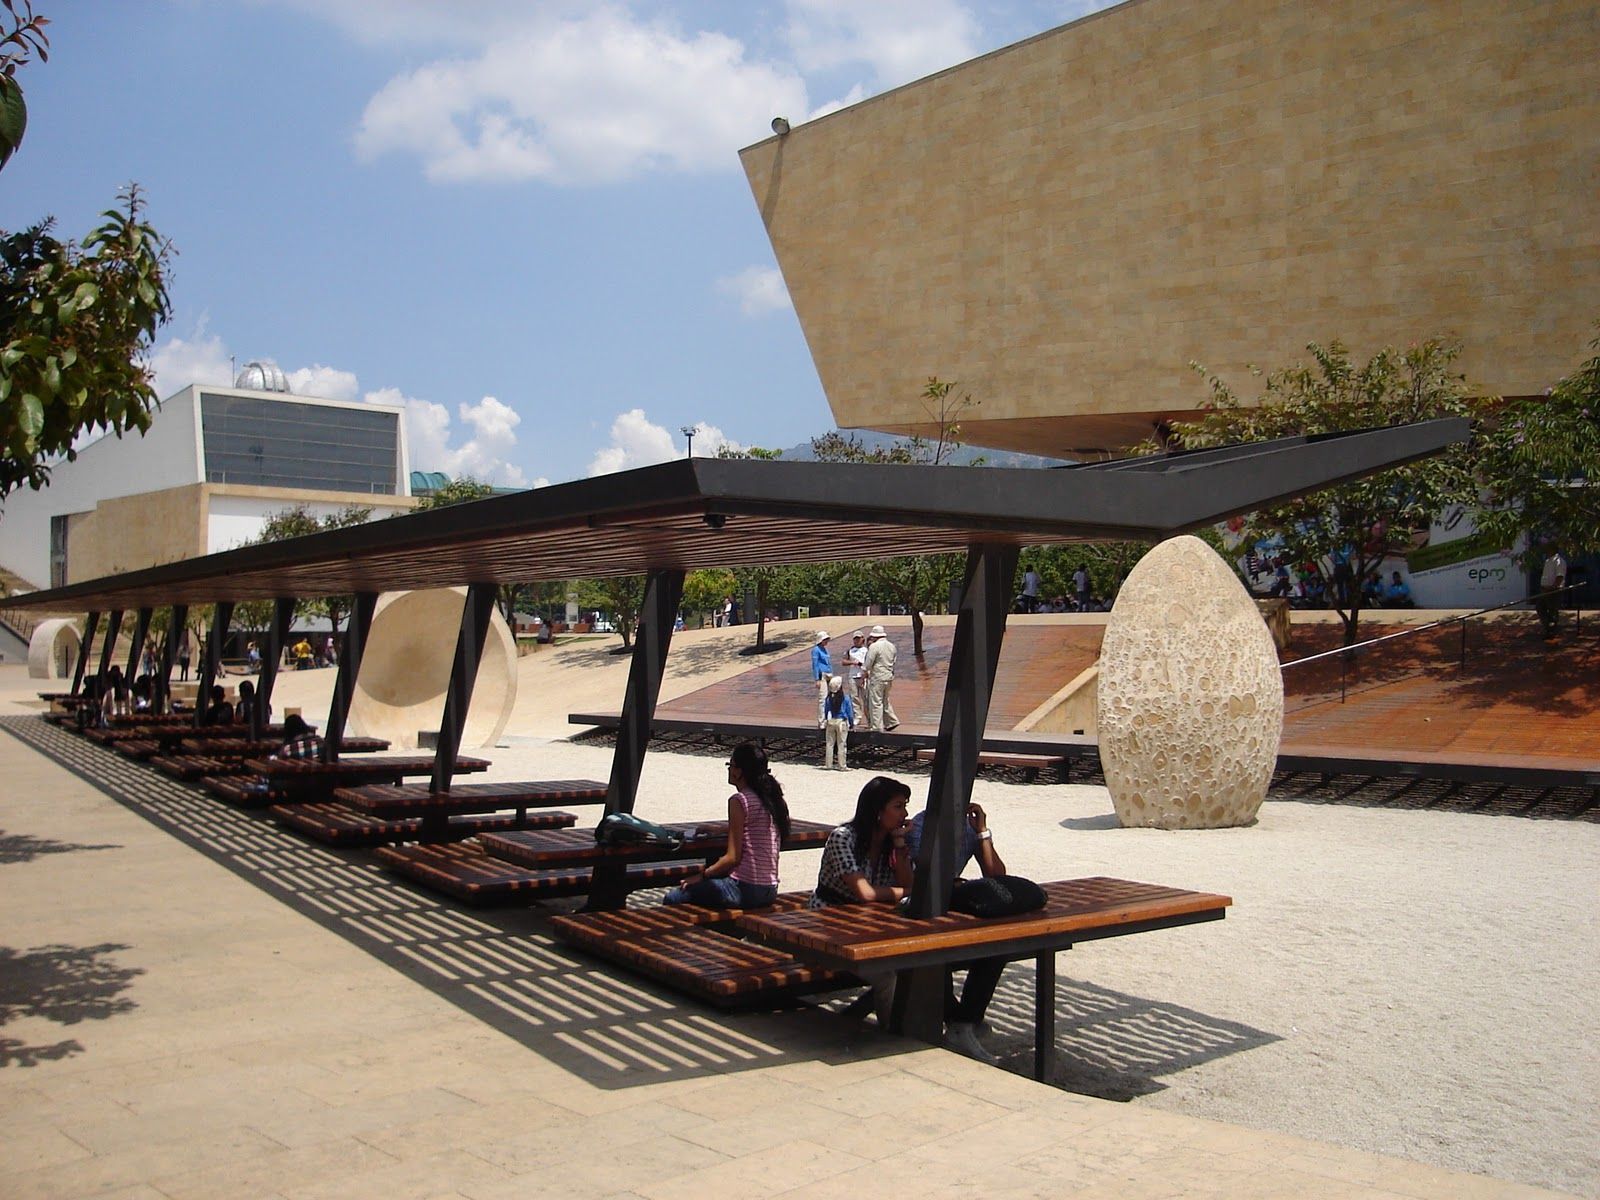 Plaza de los deseos medellin buscar con google i for Outdoor furniture jeddah